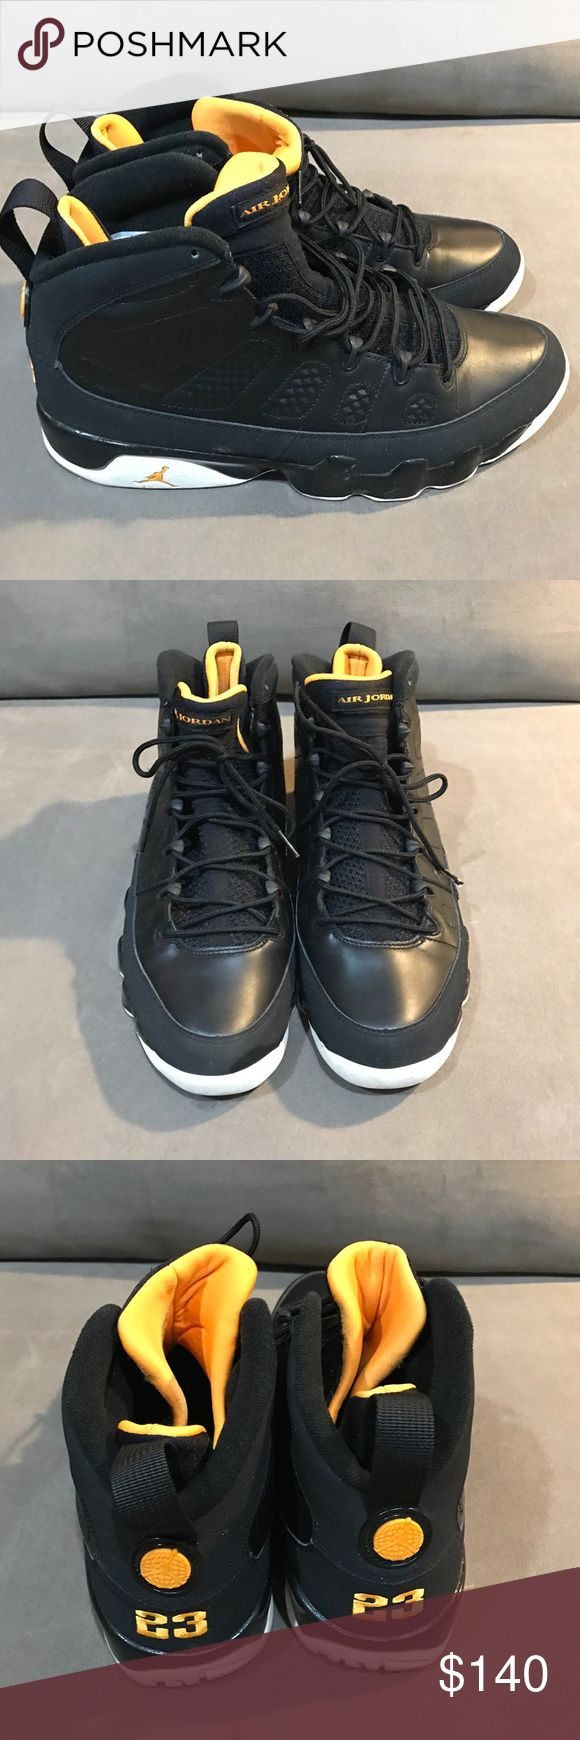 Air Jordan Retro 9 (Citrus) Size 10.5 Black, Citrus, & White. Good condition. Nike Shoes Sneakers